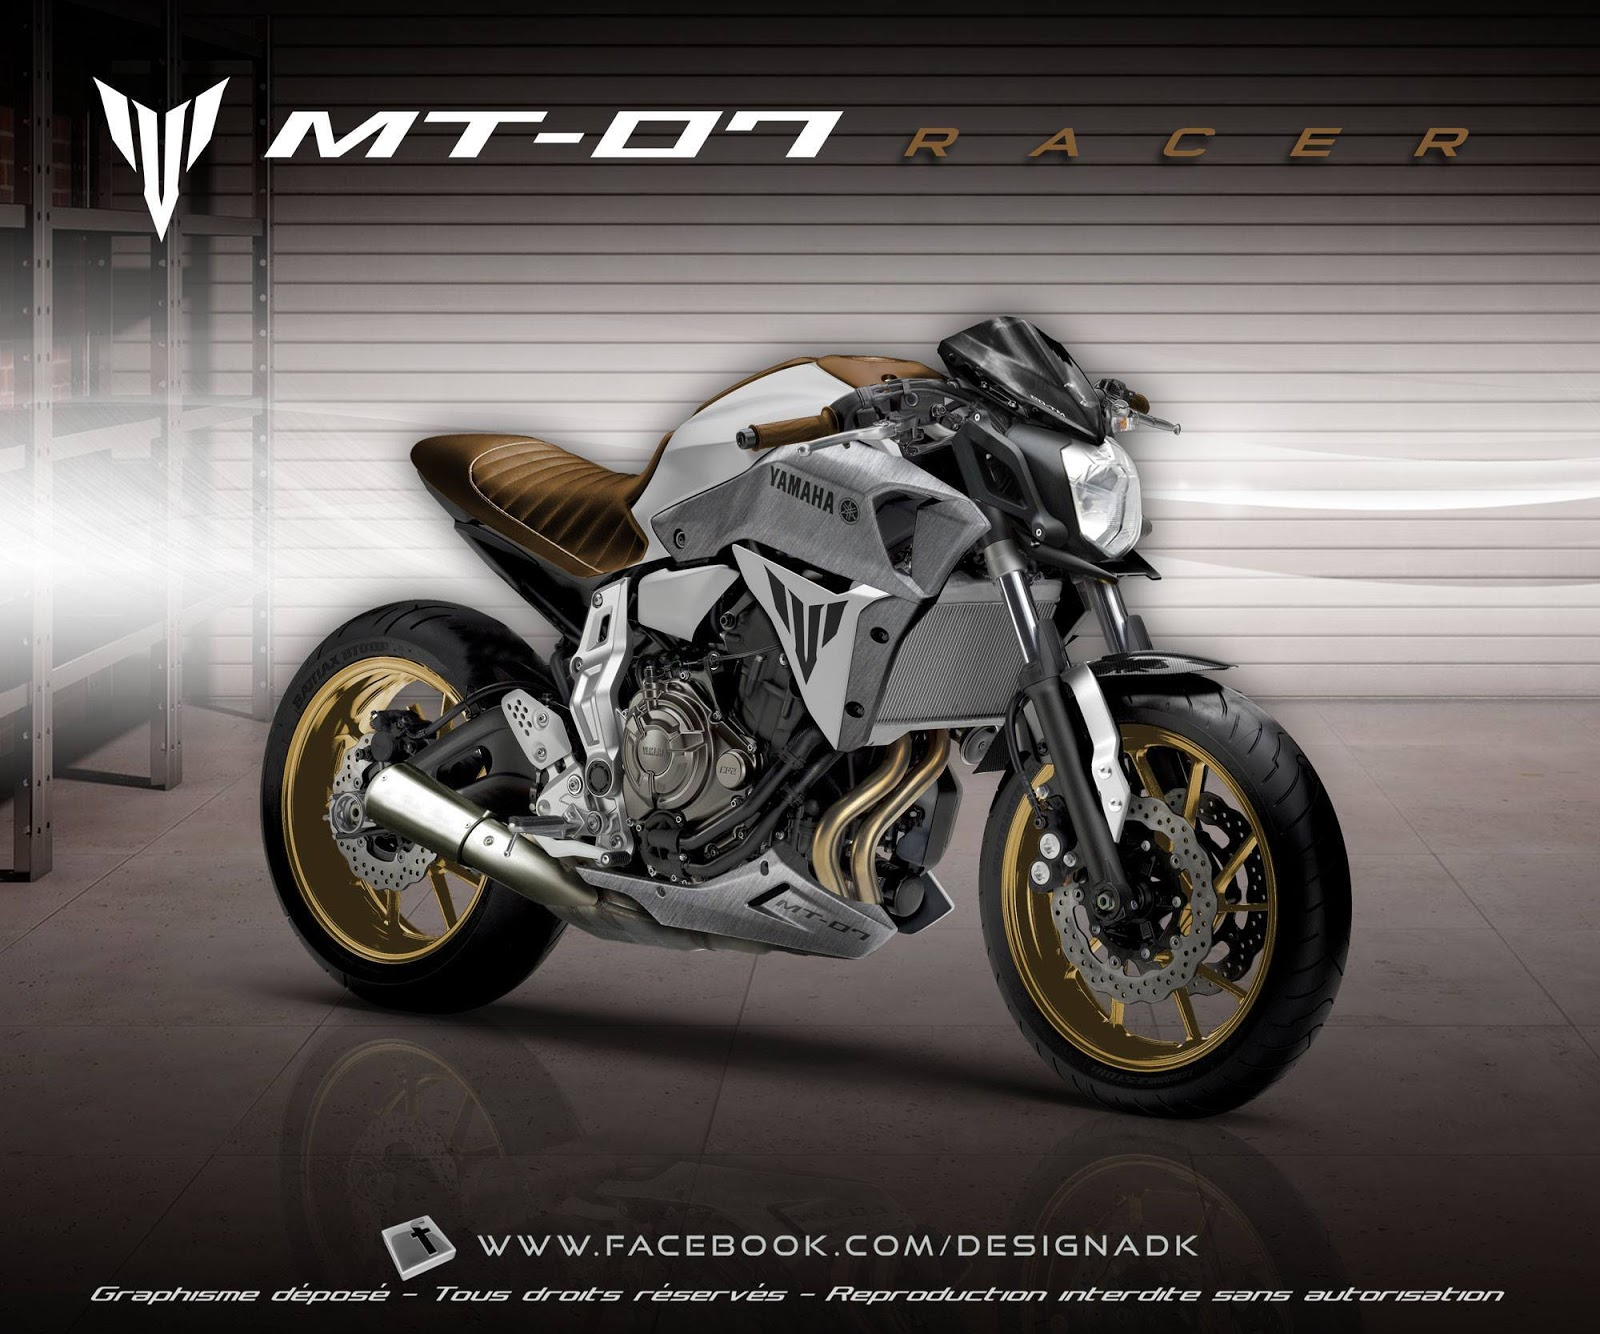 Motorcycle Modification Cafe Racer Concepts